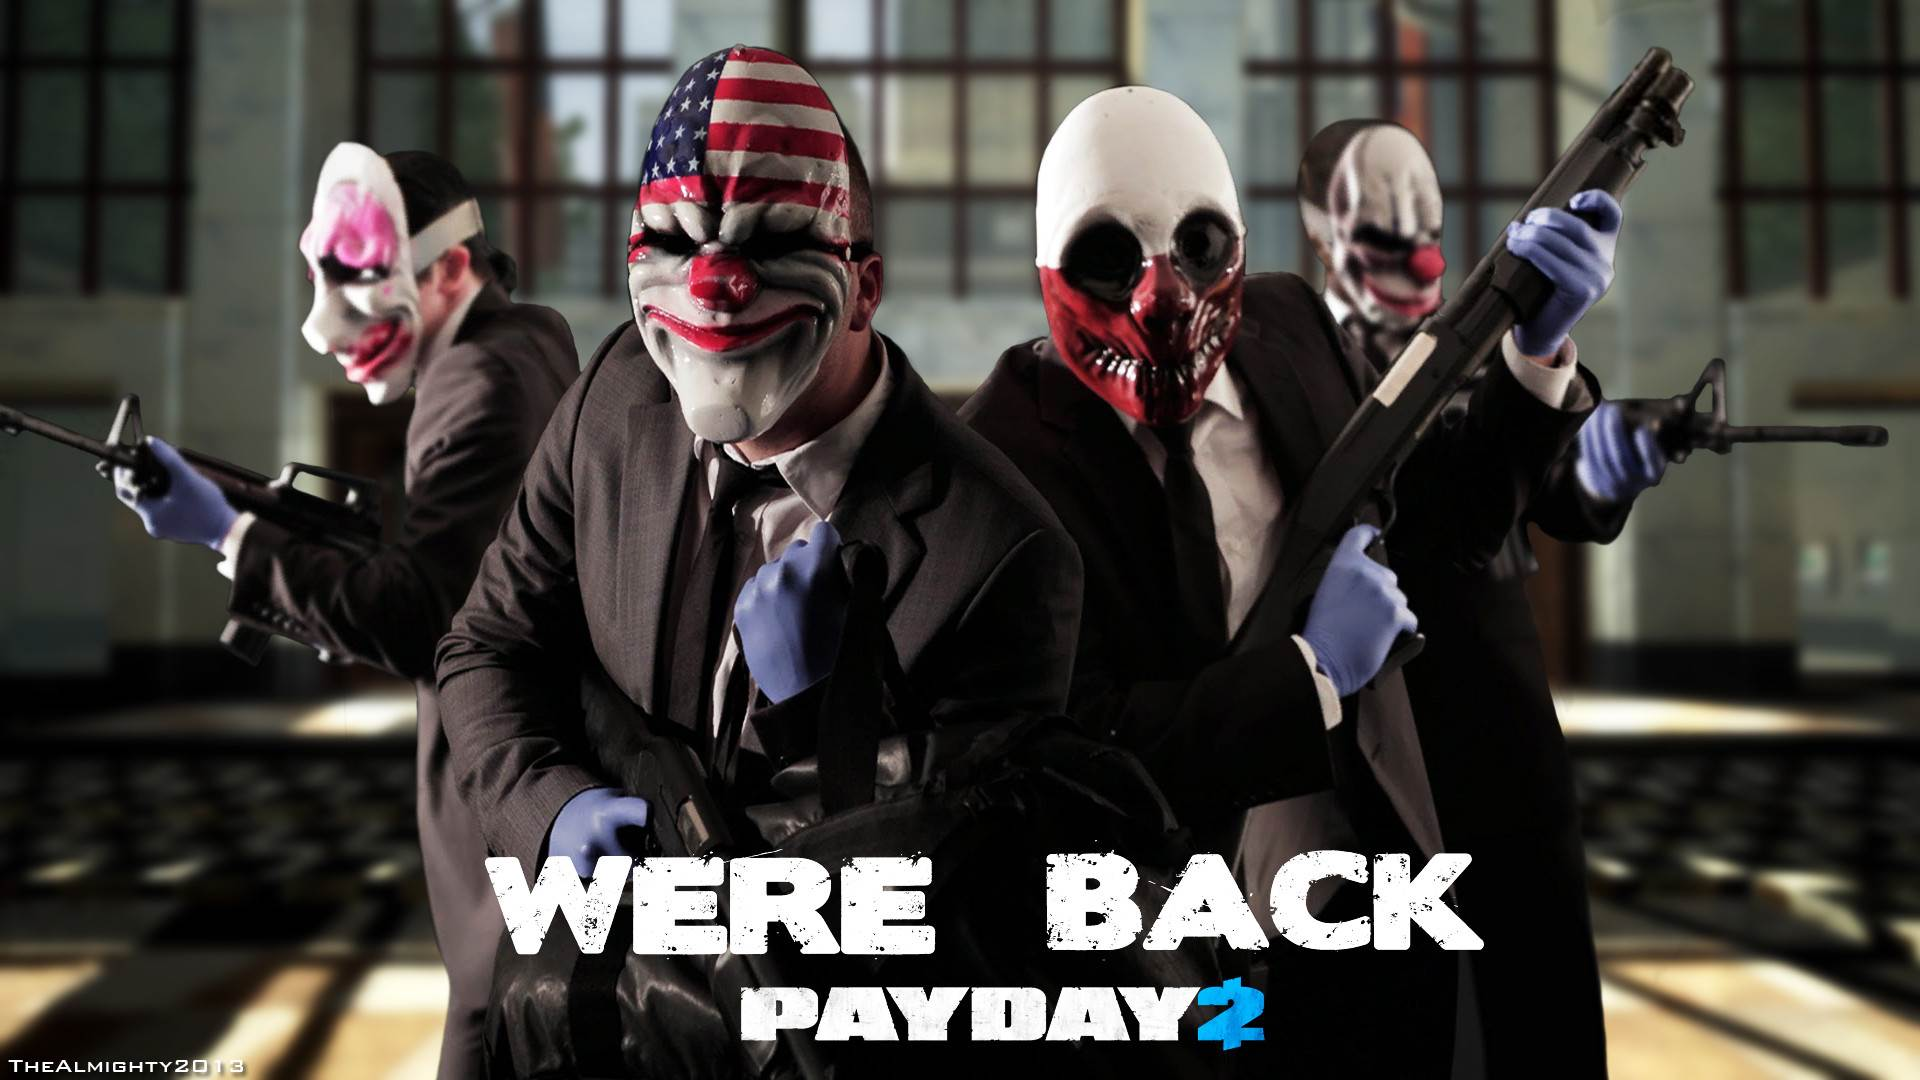 505 games overkill software payday 2 payday 2 hd wallpaper payday 2 1920x1080